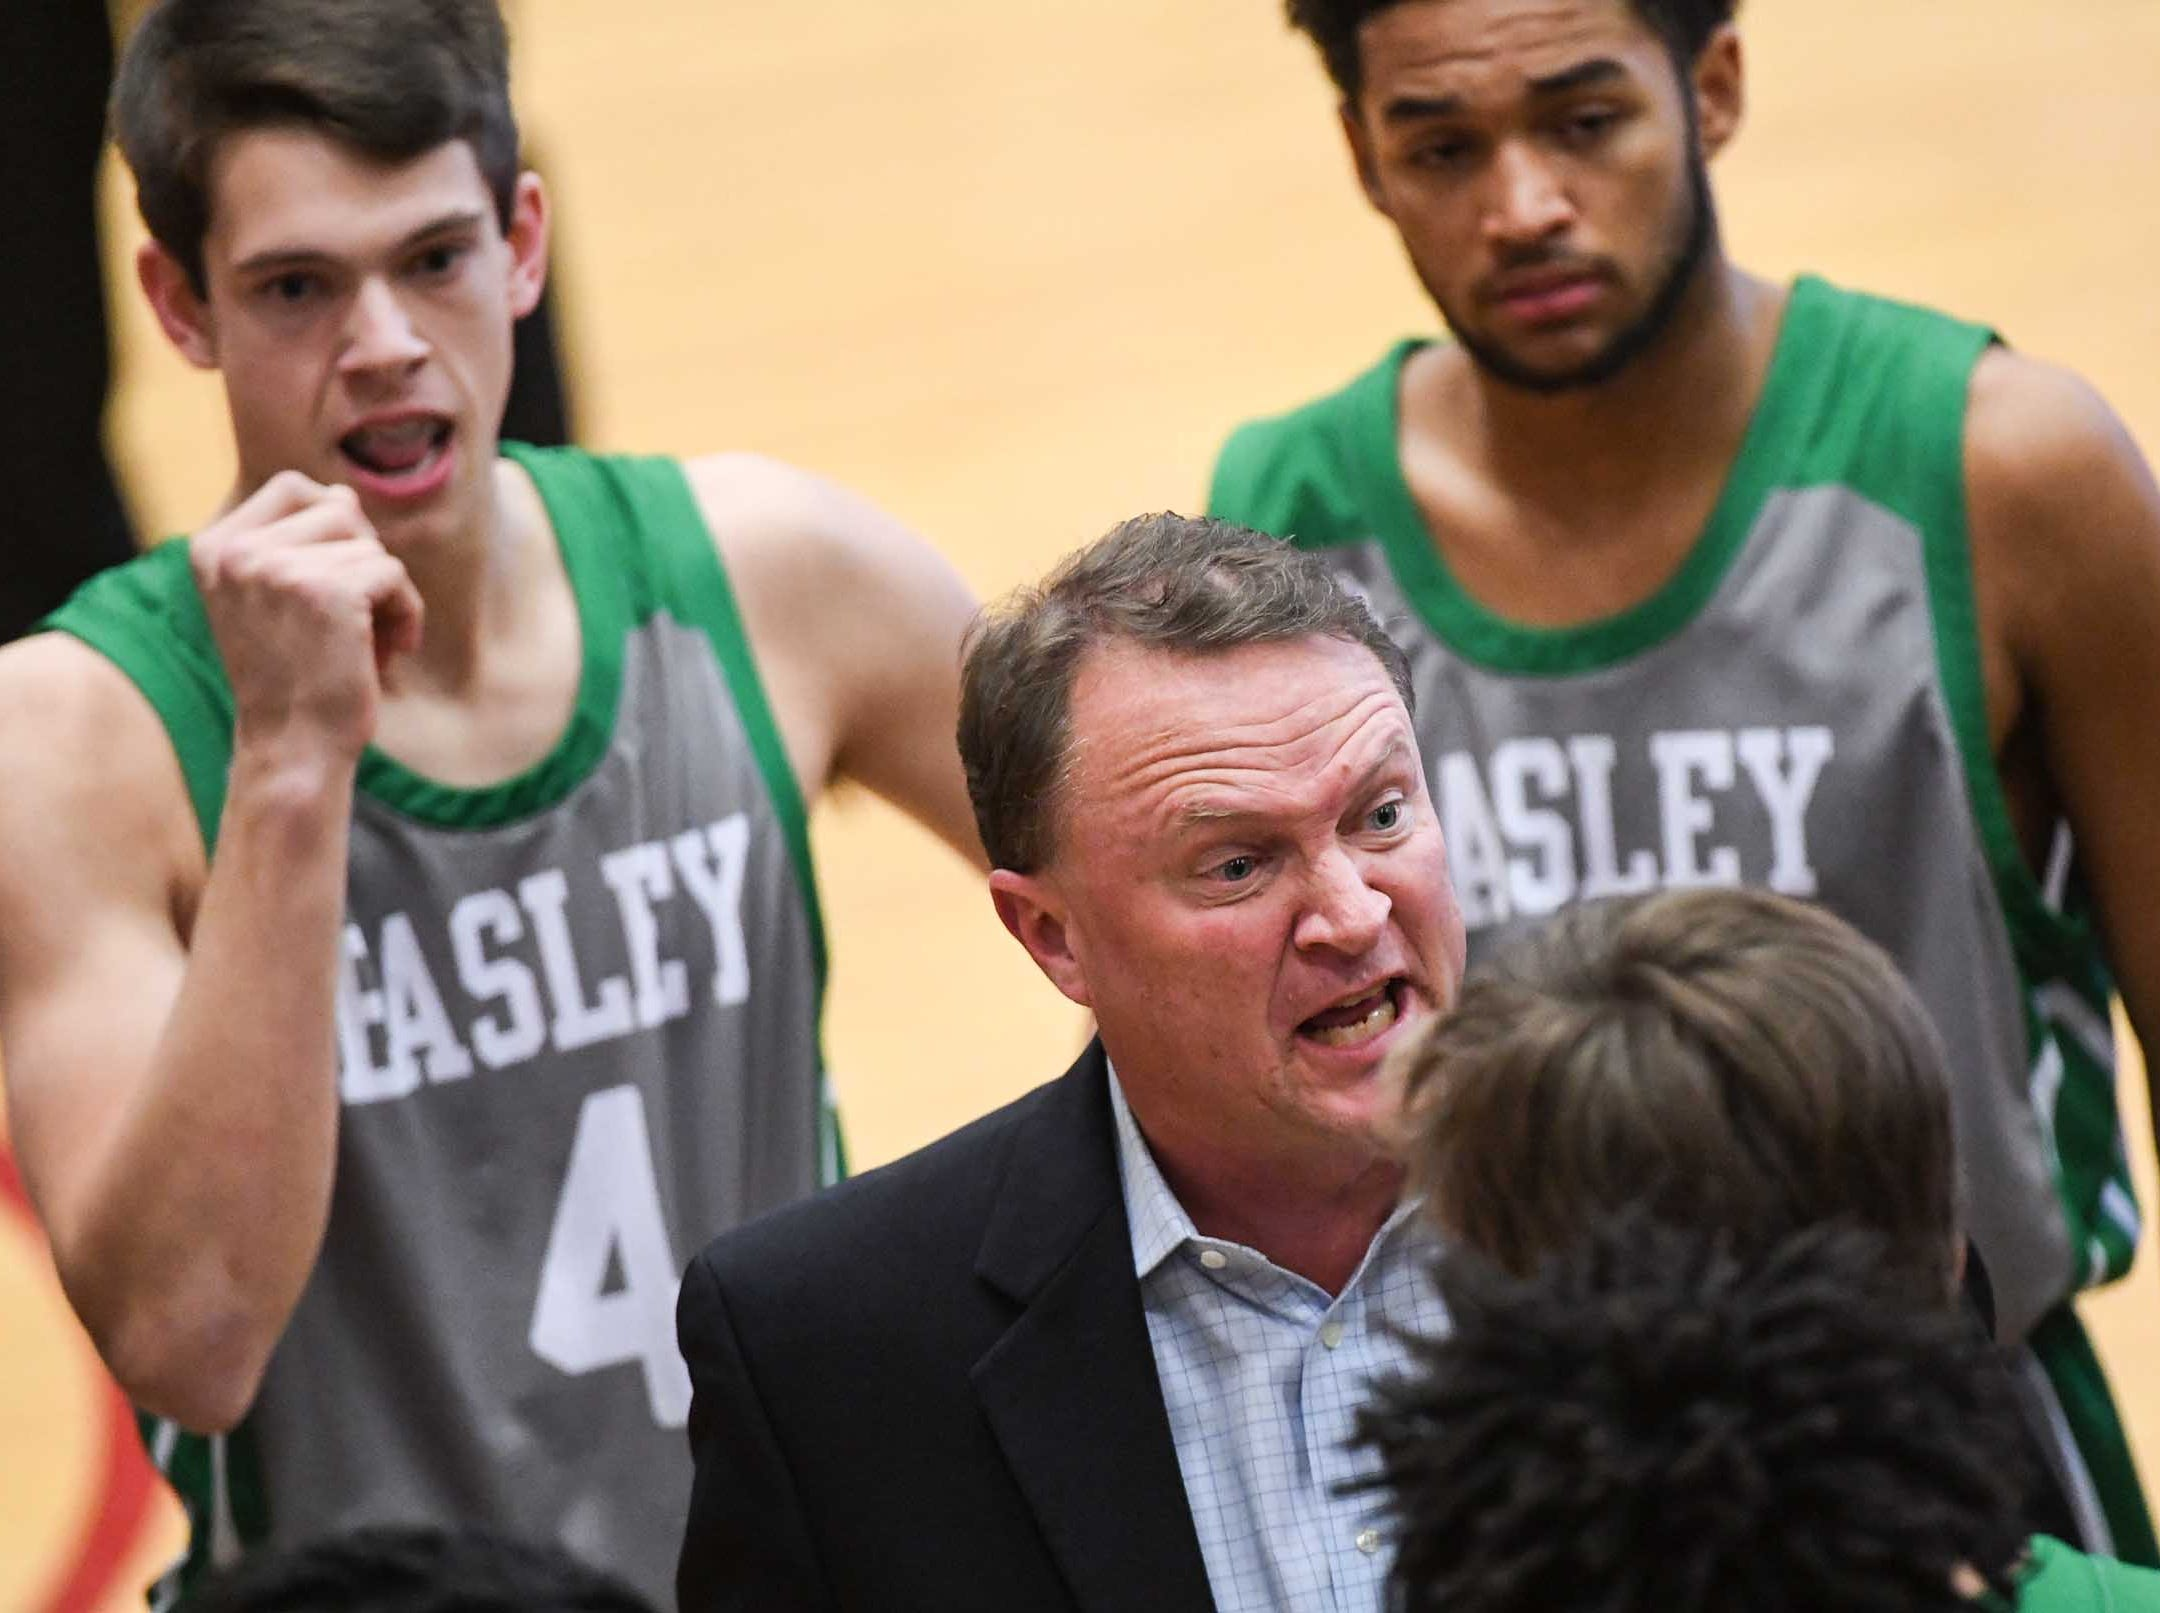 Easley head coach Mike Jones talks with players during the first quarter at Westside High School in Anderson on Friday.